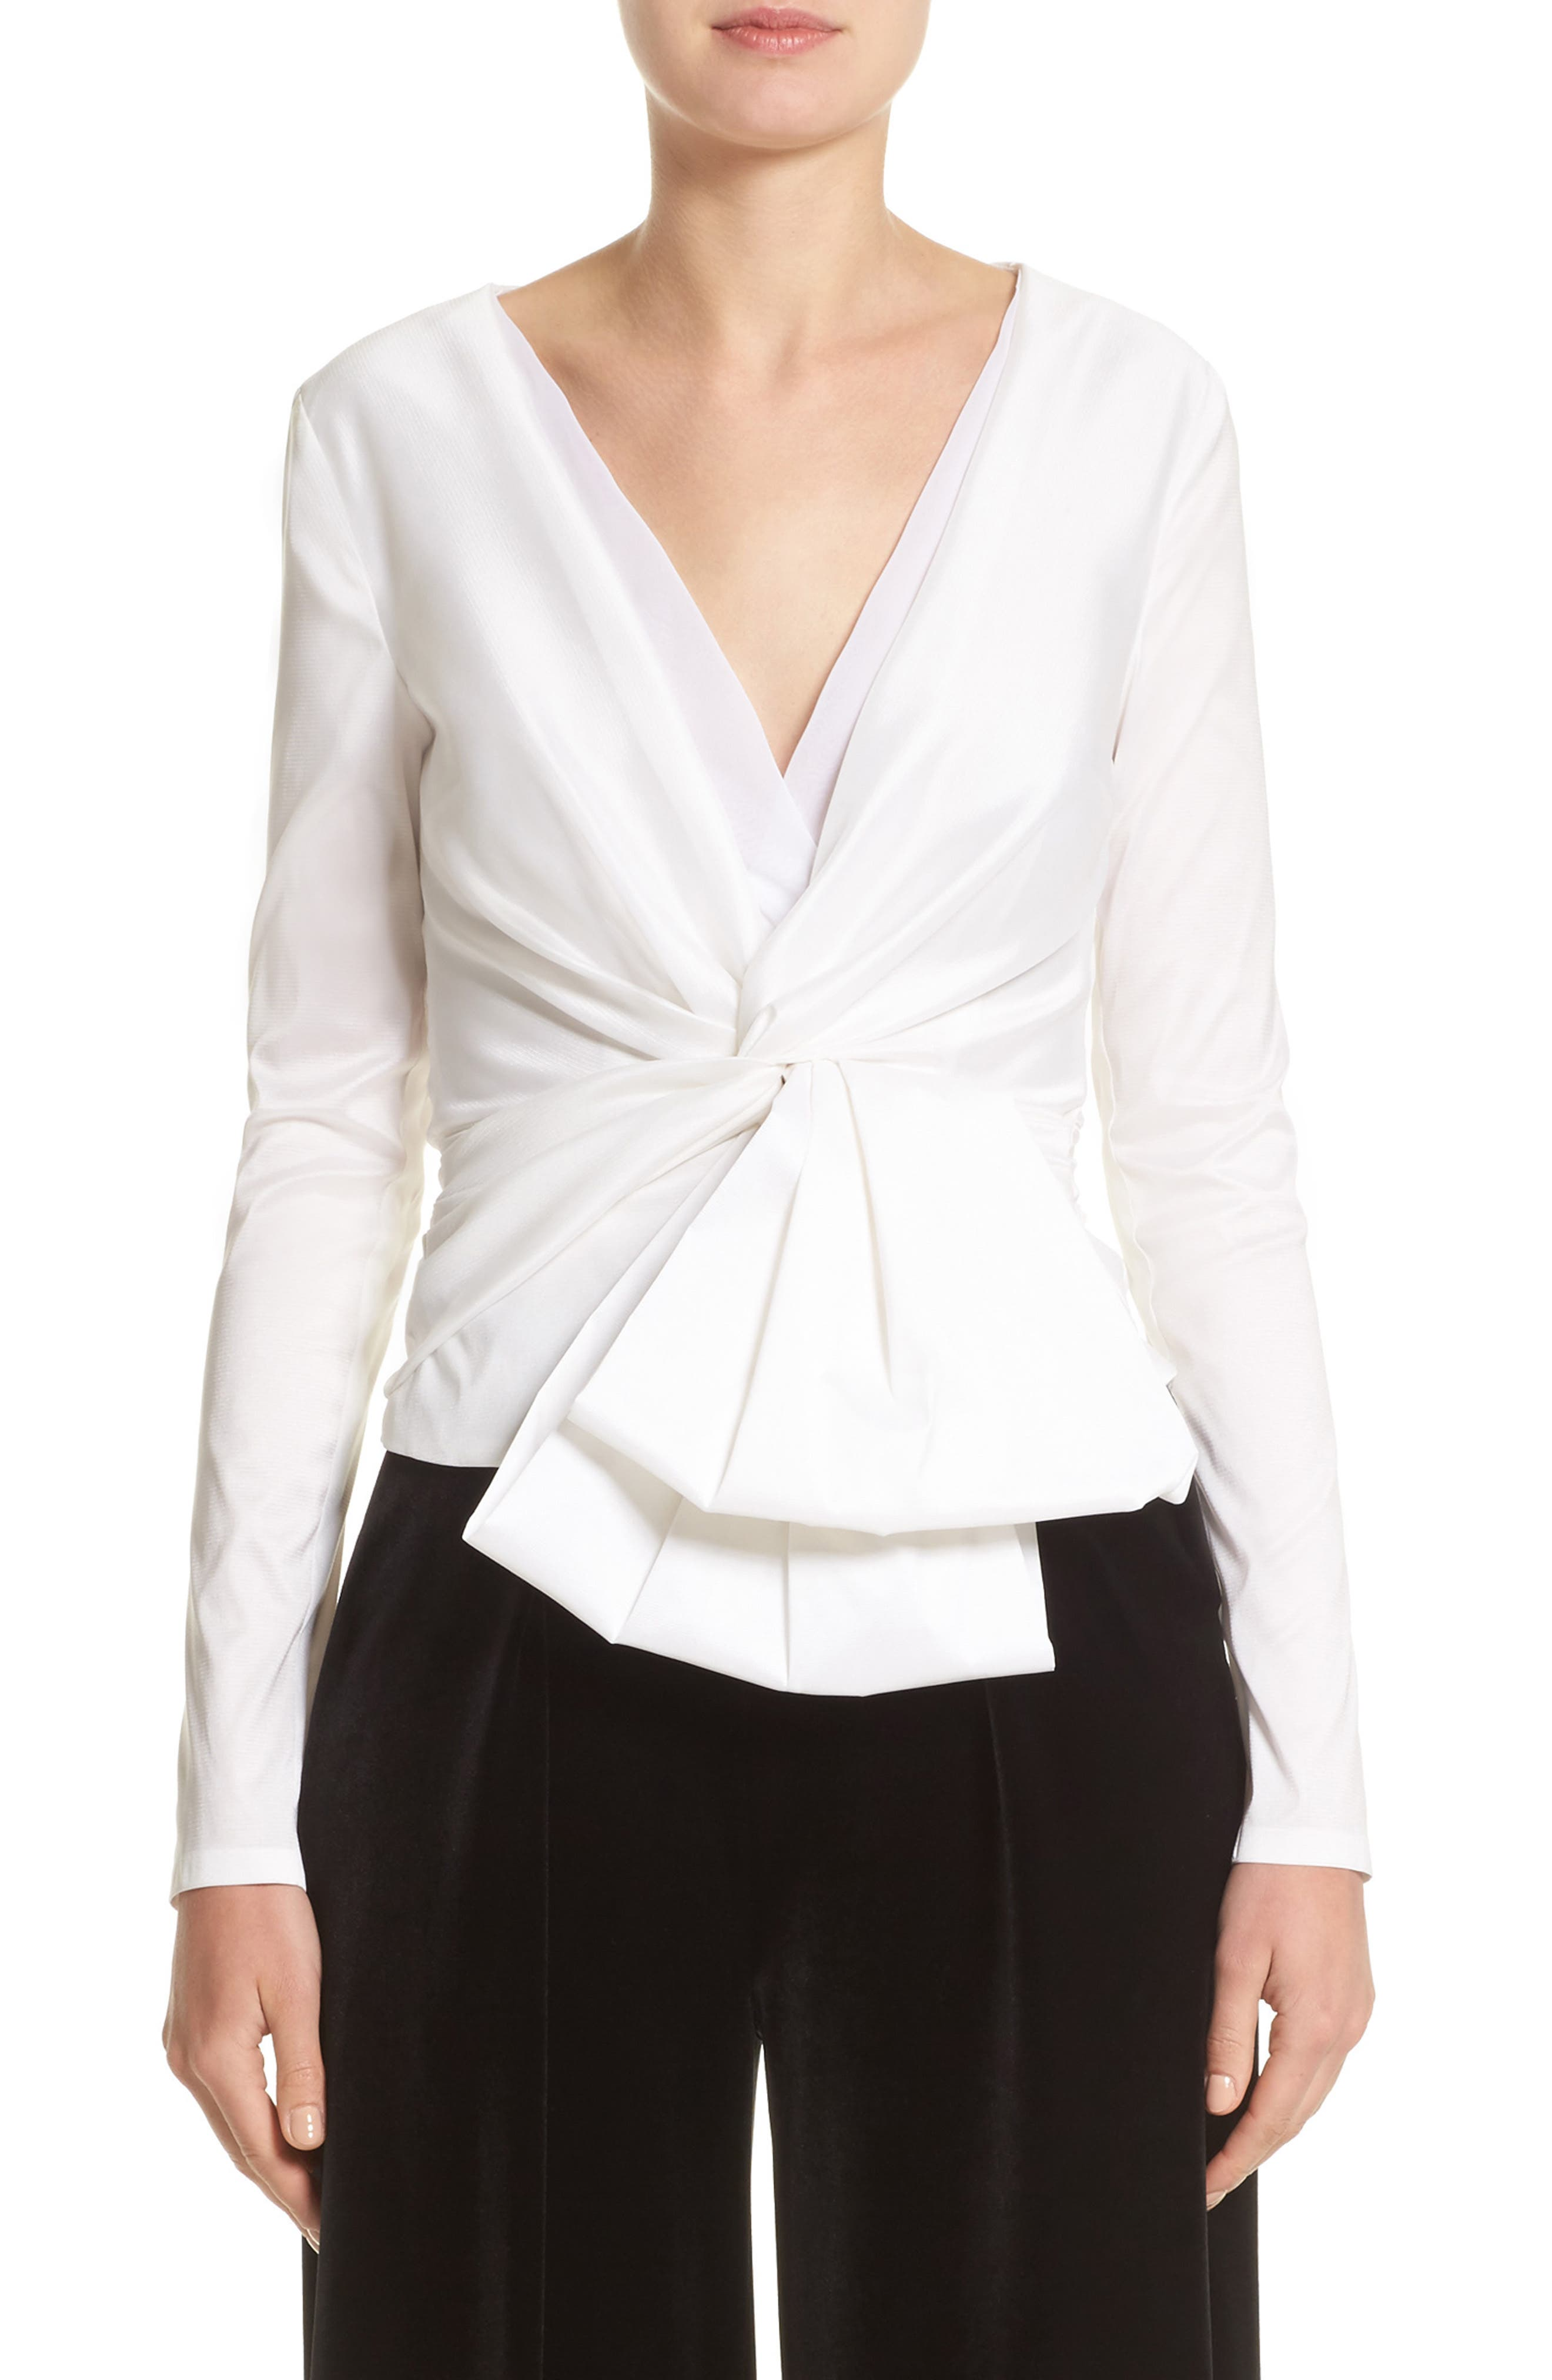 V-Neck Blouse with Bow Detail,                             Main thumbnail 1, color,                             White